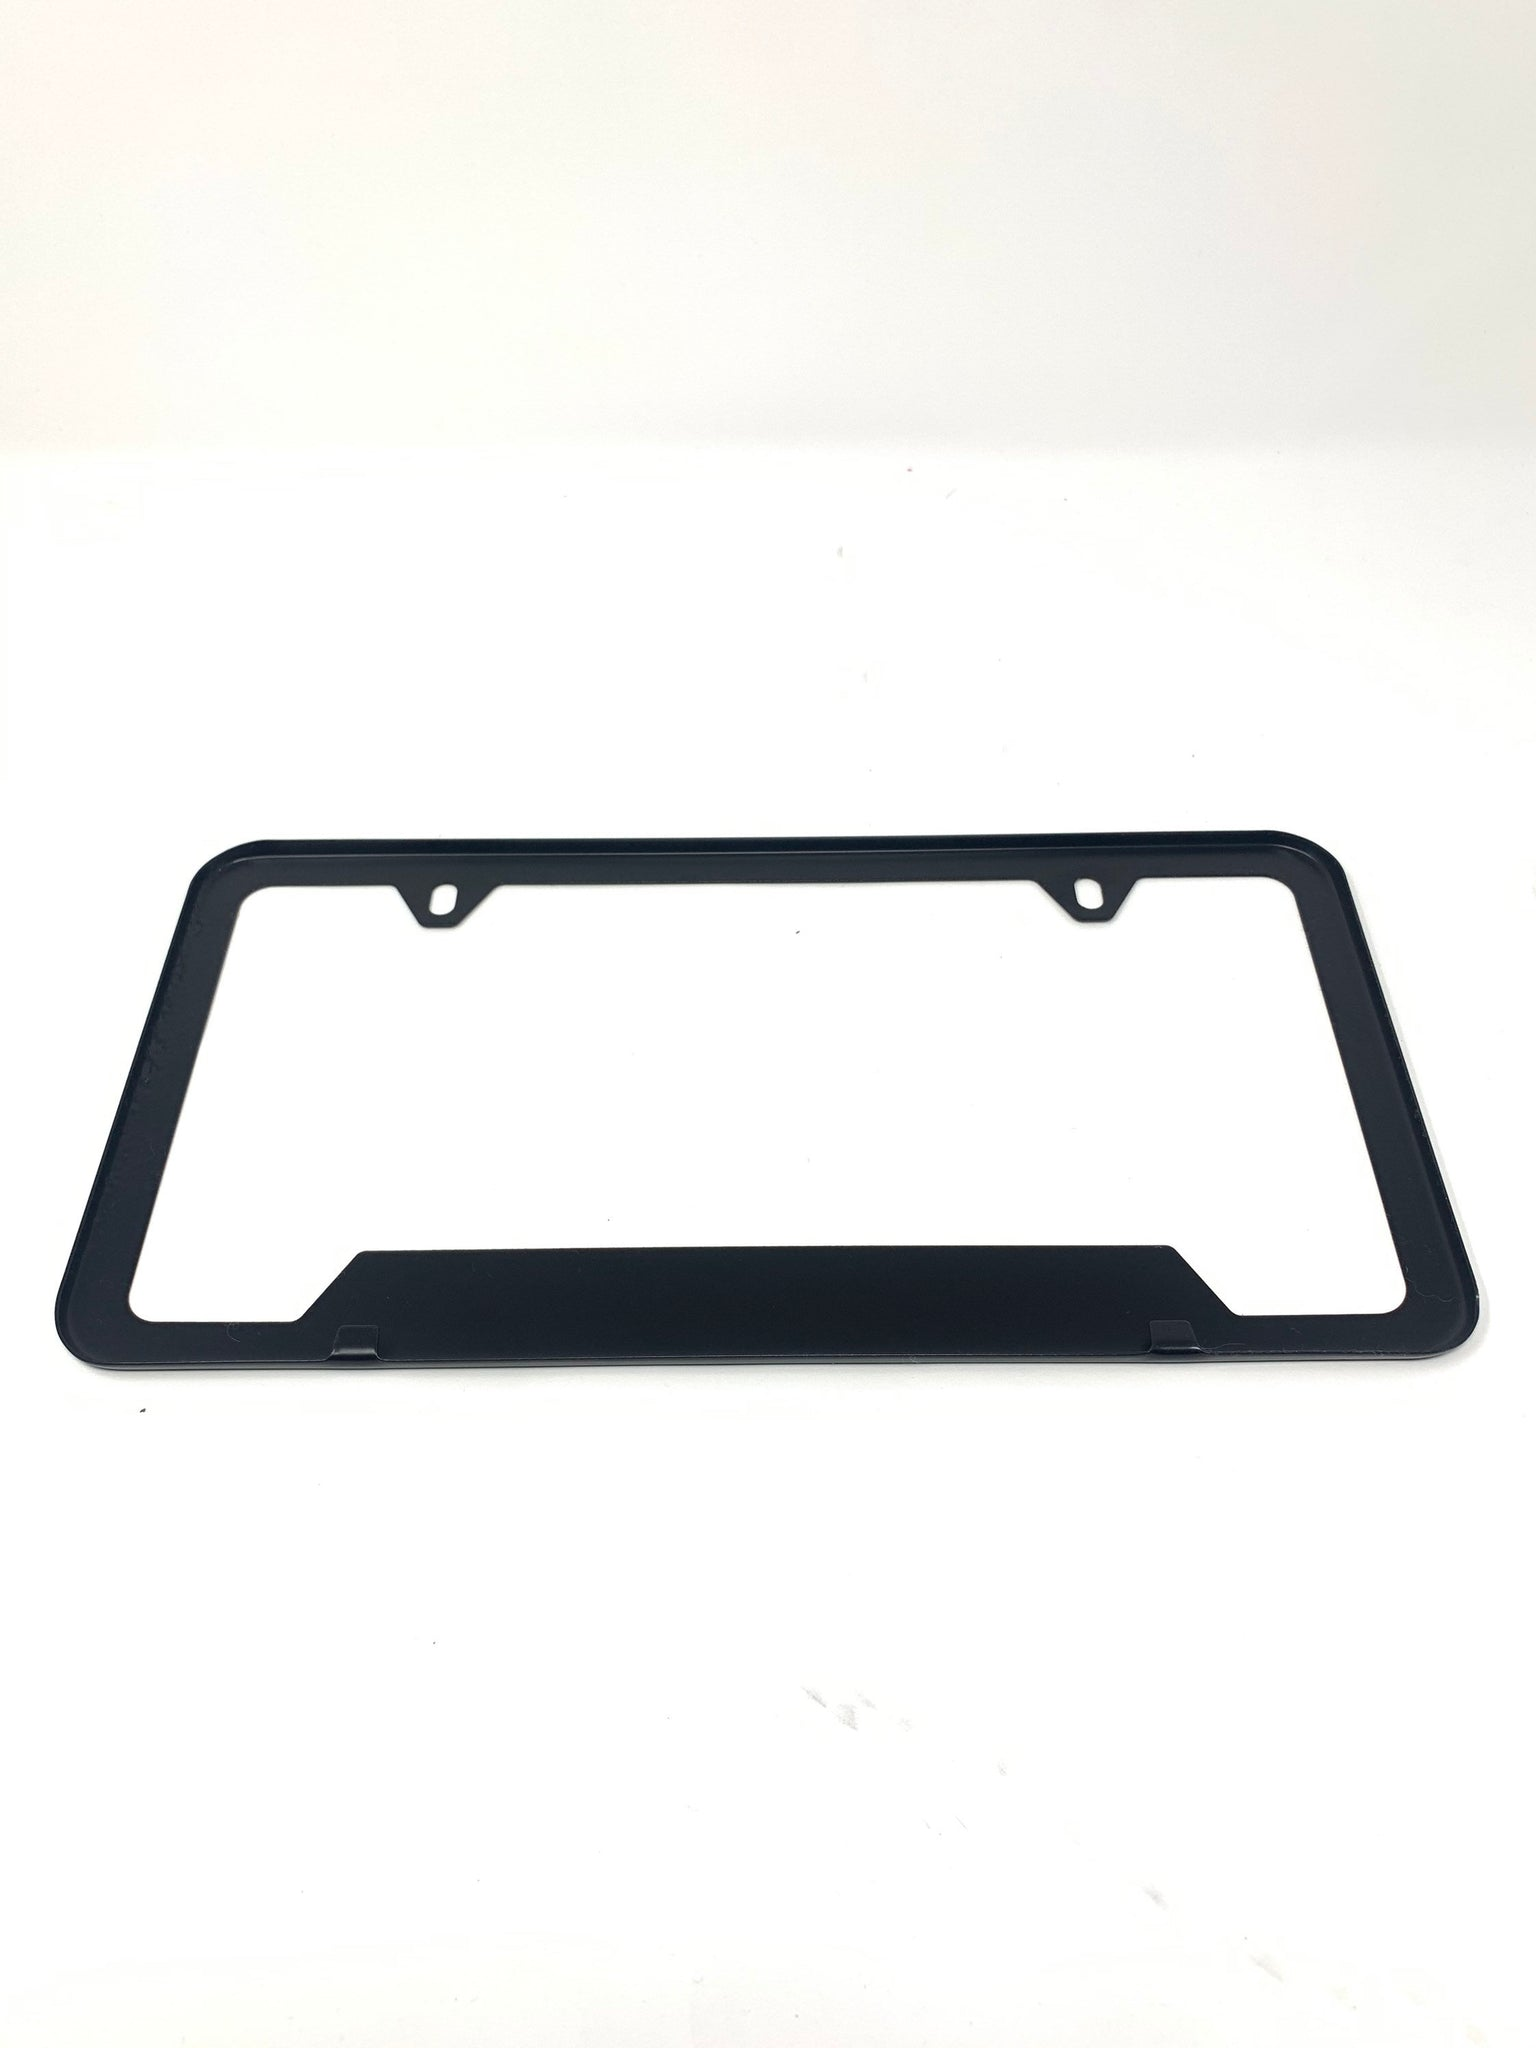 Black Universal Metal License Plate Frame, Satin, Chrome Delete, No Rust,  Warranty / Cali, Porsche, Bmw, Nissan, Ford, Satin, Cali